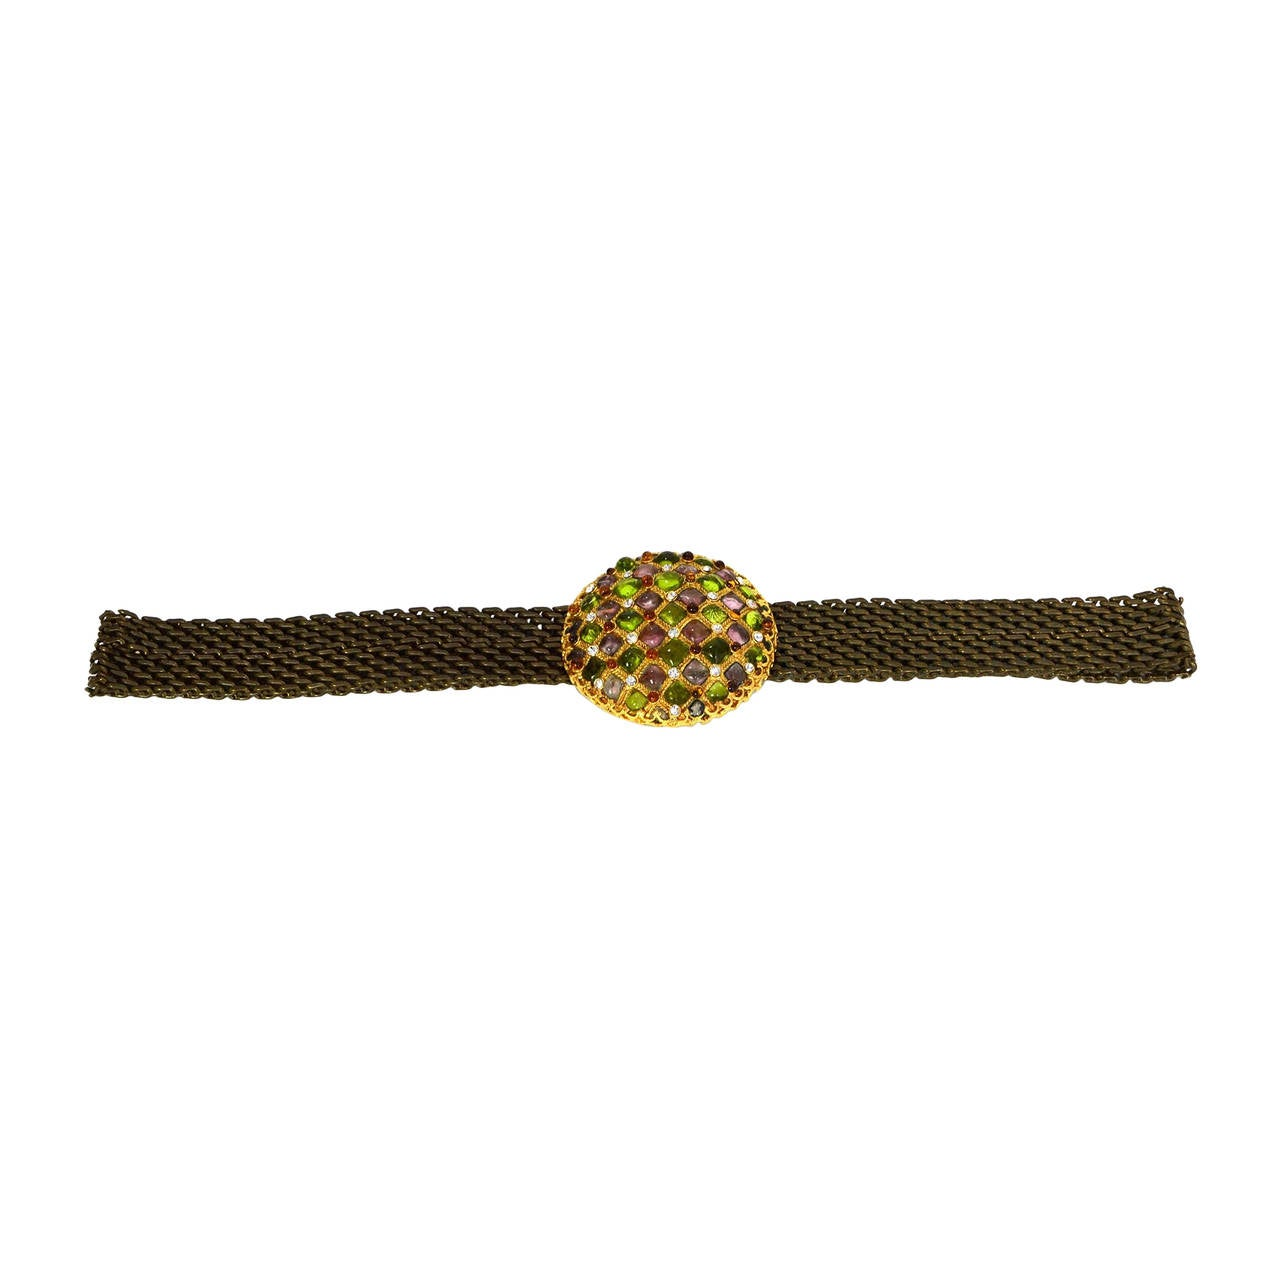 CHANEL Vintage '97 Gripoix & Rhinestone Chain Link Belt For Sale